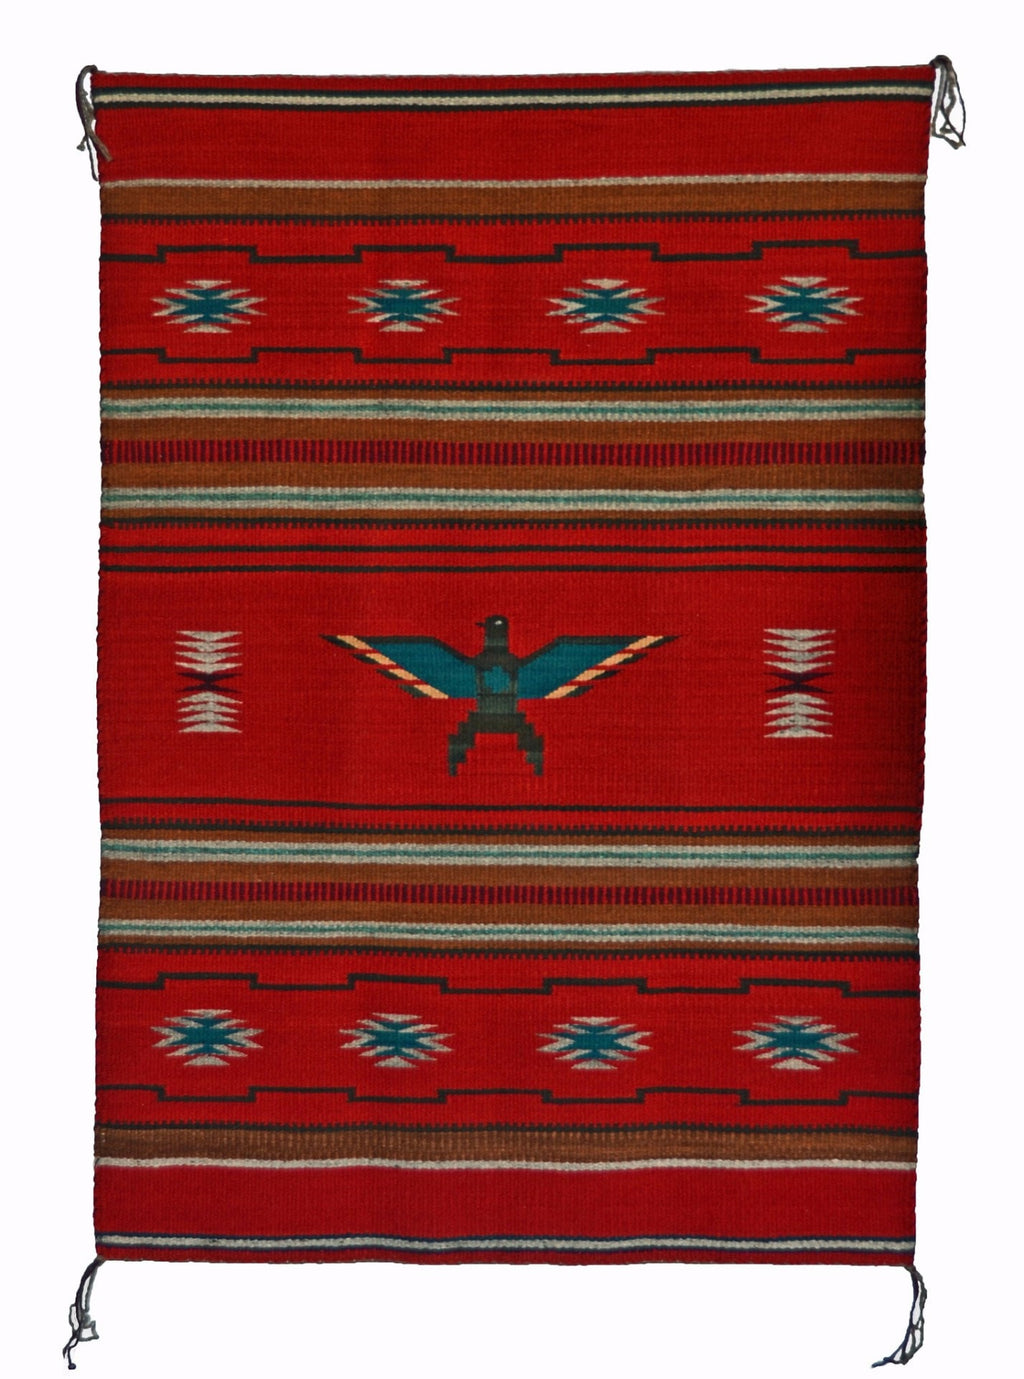 "Chinle Pictorial Navajo Weaving : Eagle design : Churro 1519 : 31"" x 46"" - Getzwiller's Nizhoni Ranch Gallery"